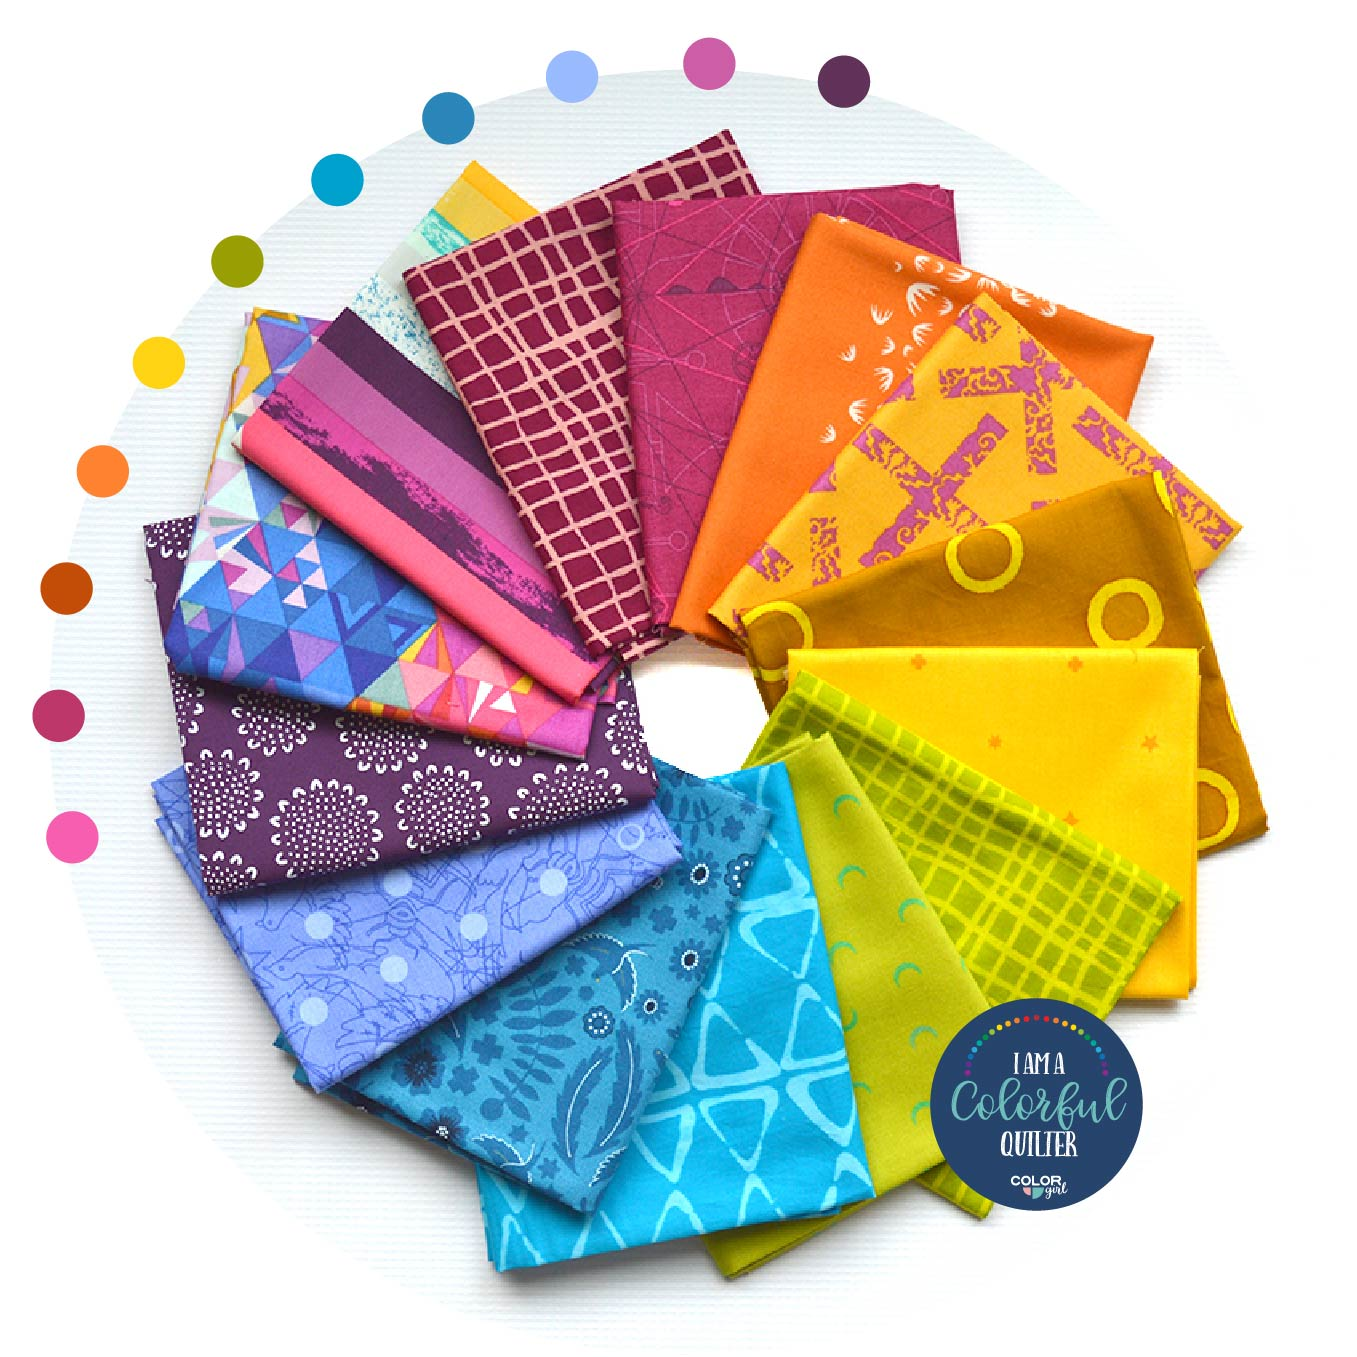 Rainbow fabric bundles for quilters, specialty sewing fabric sold by Color girl Quilts